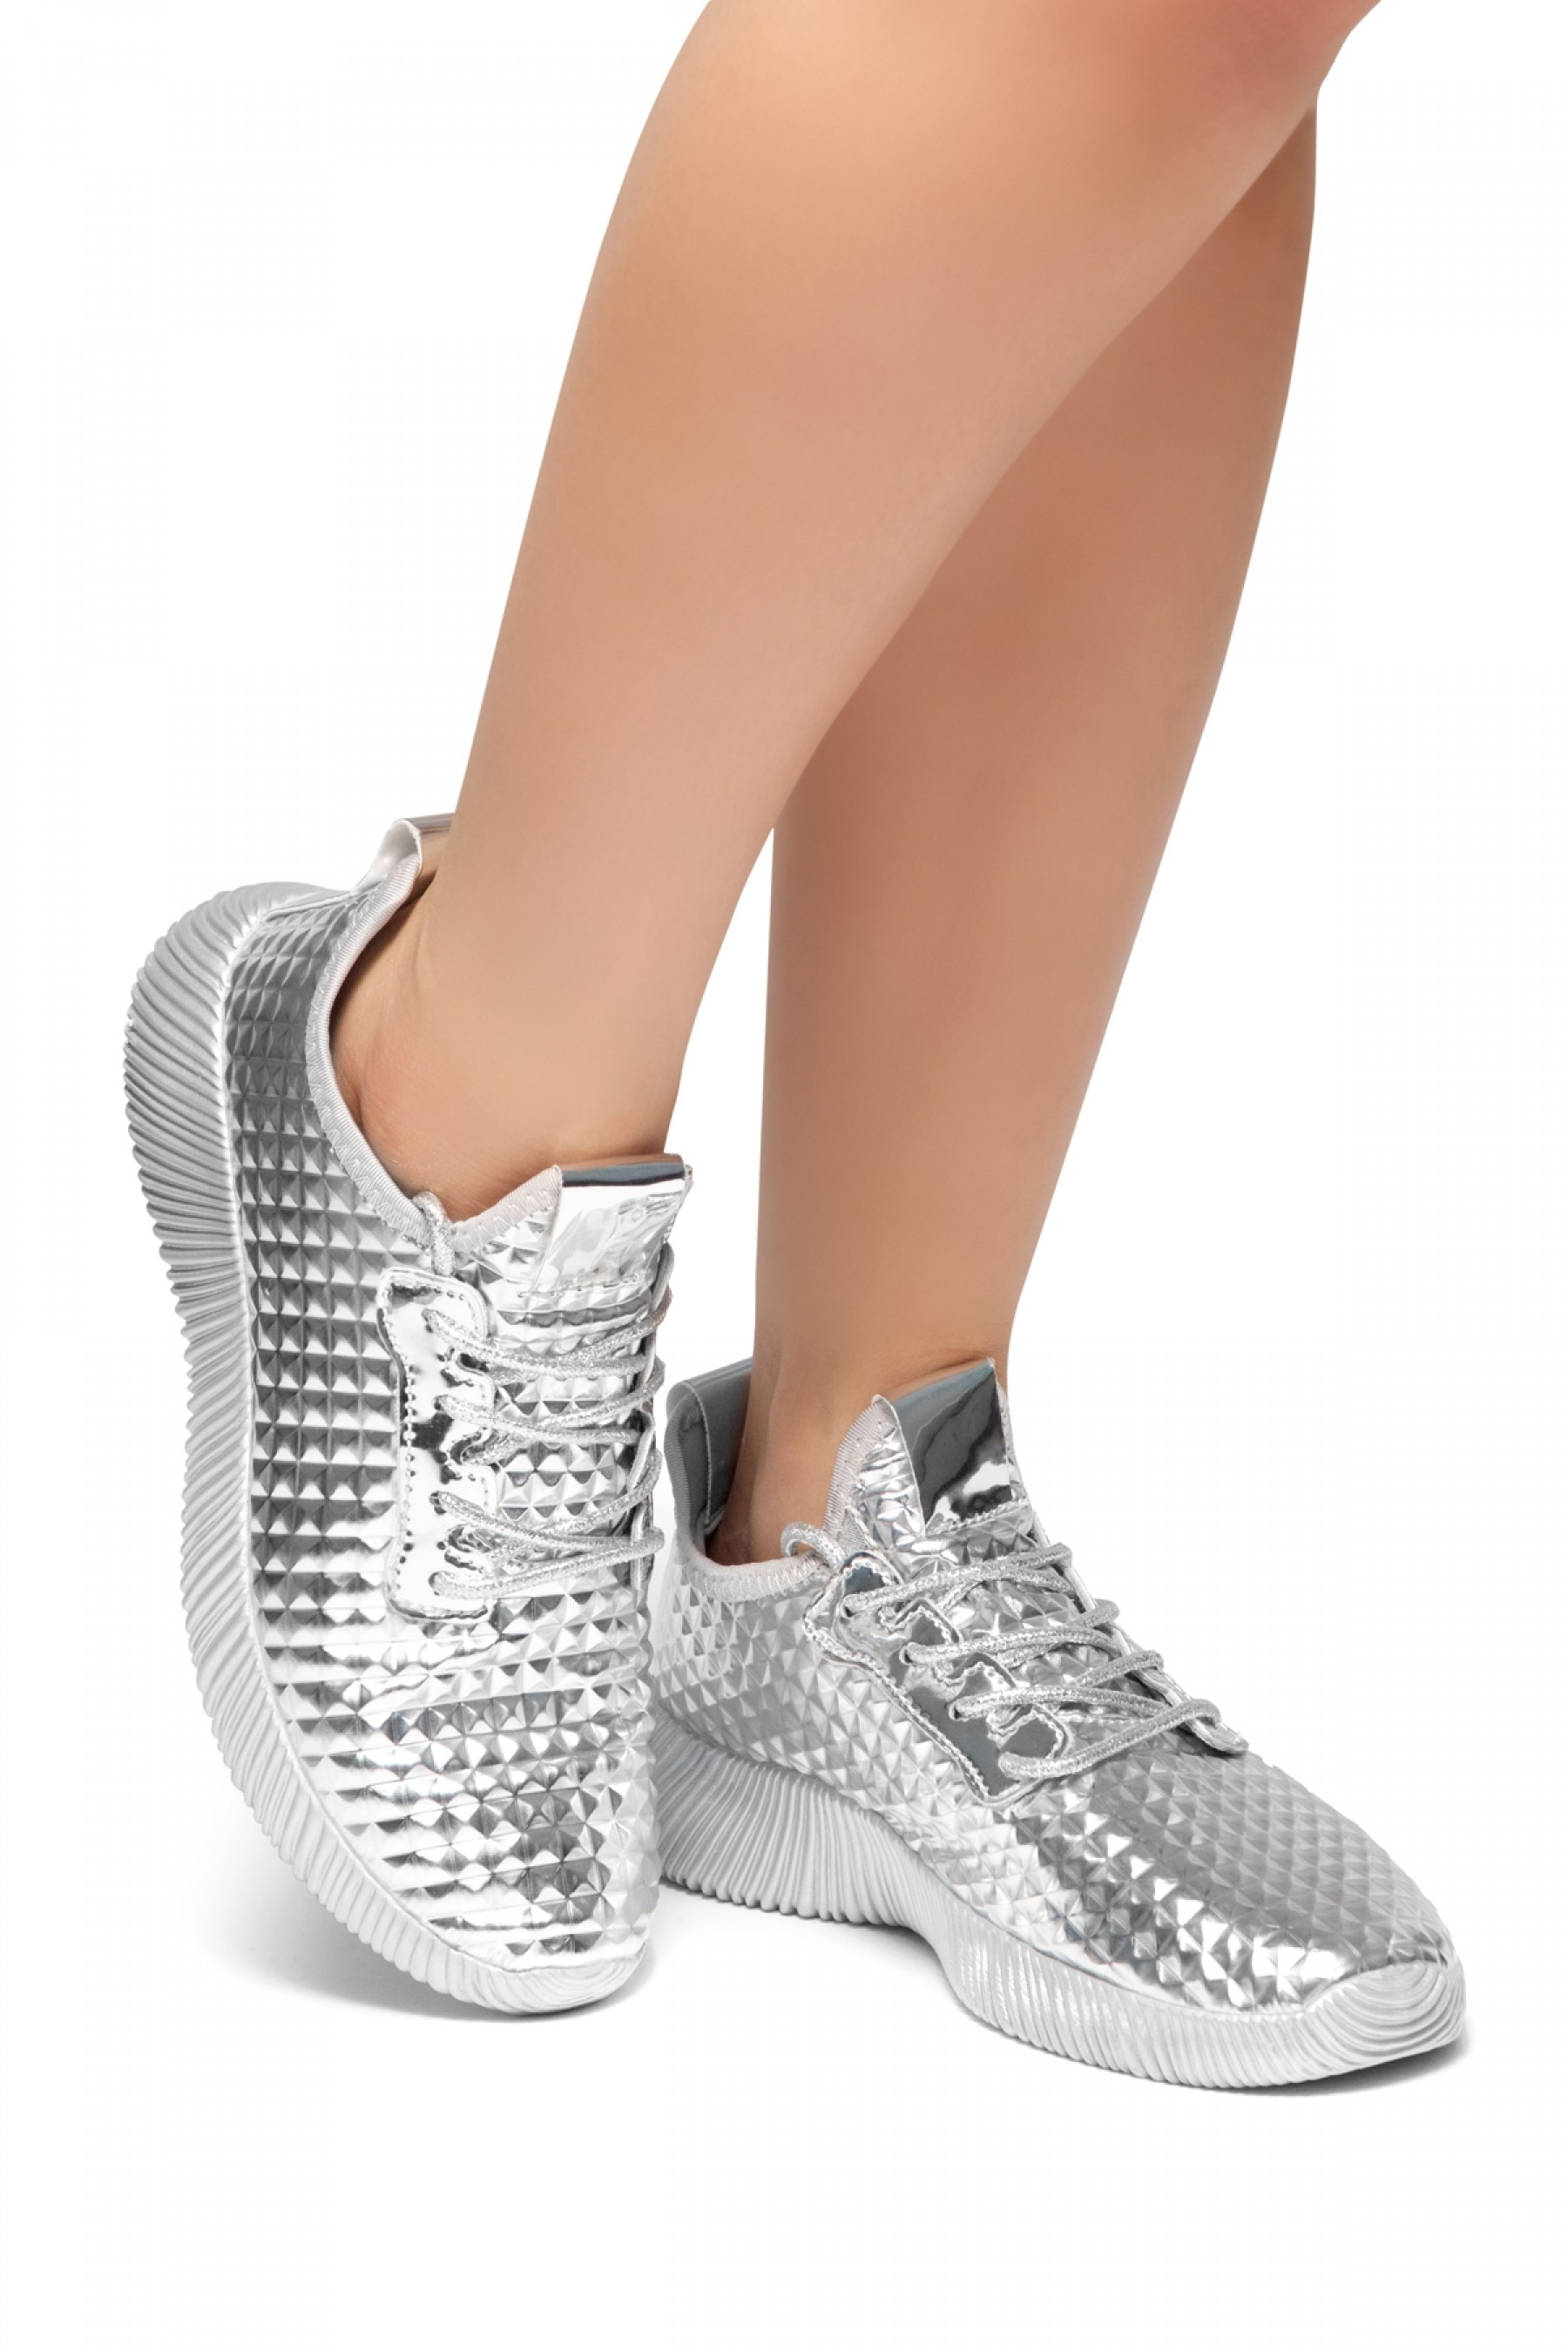 HerStyle:LIGHT SHOW-Textured Metallic Holographic Lace up Rigged Sneaker (Silver)